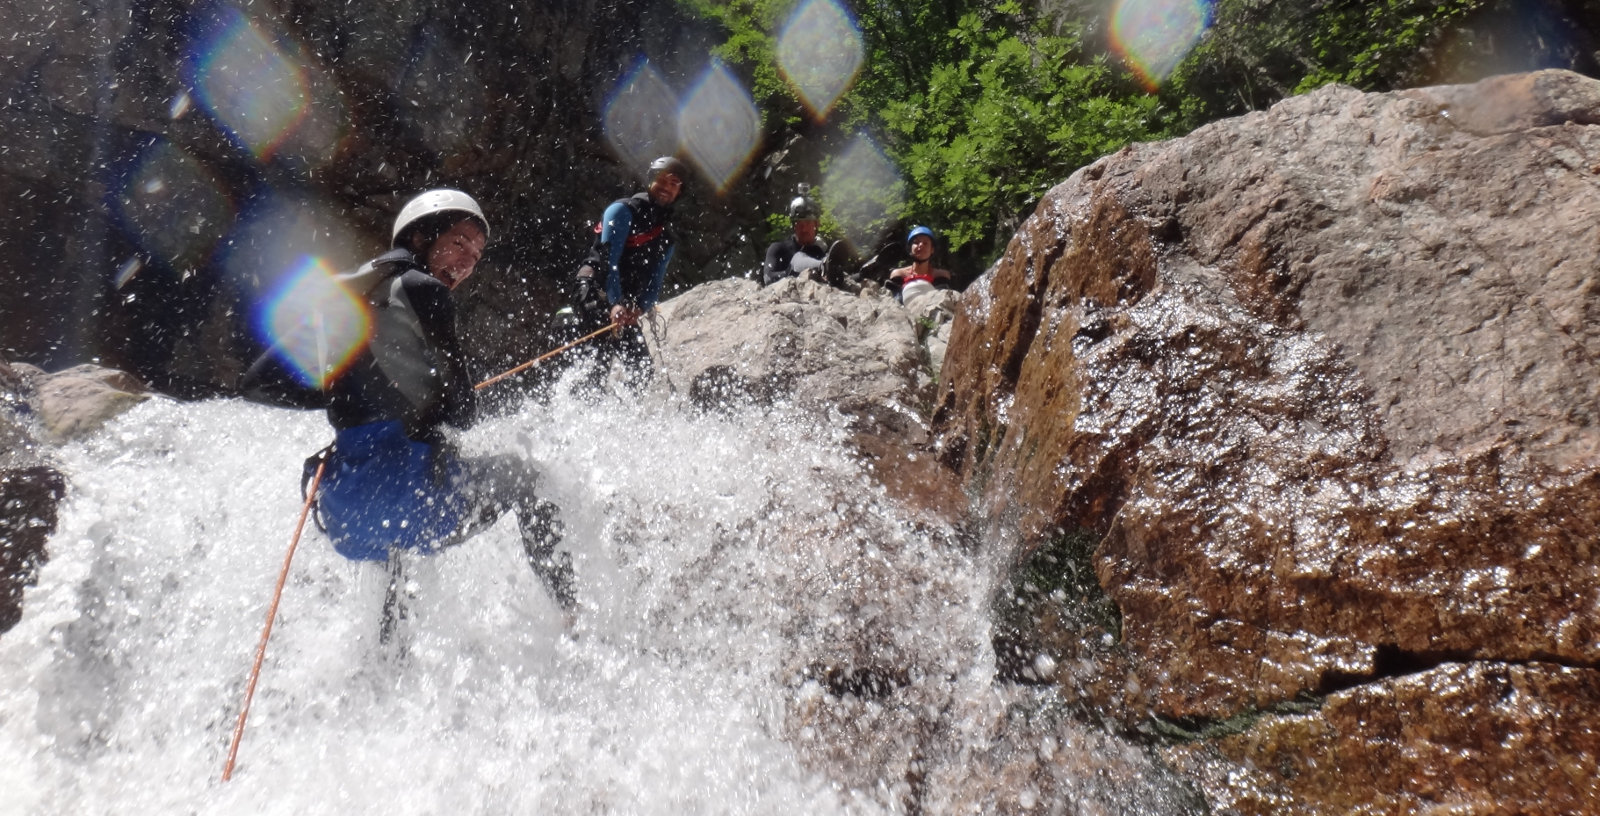 canyoning-tapoul-cevennes-lozere-gard-herault